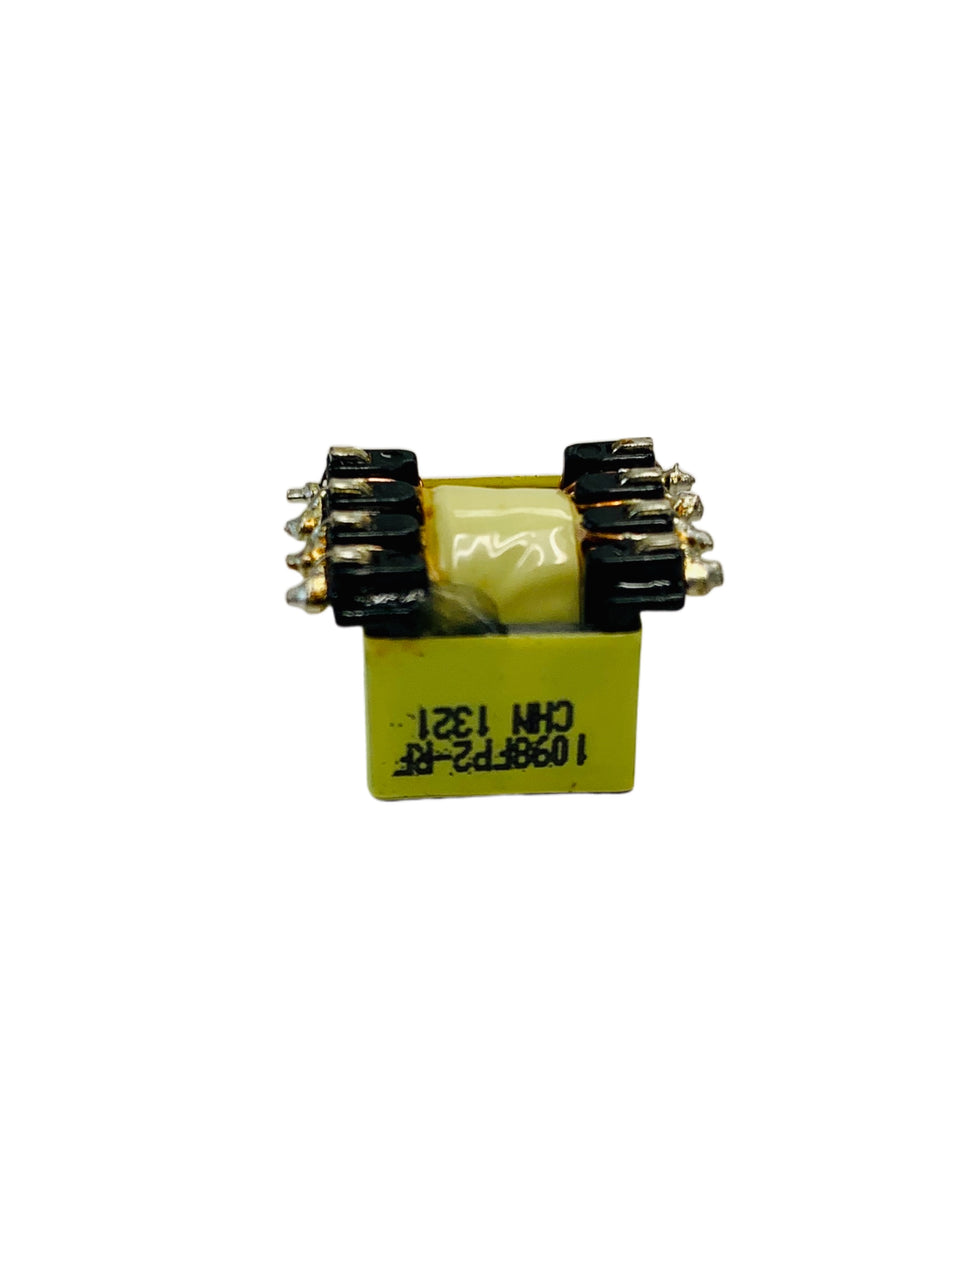 Triad Magnetics 1098FP2-RF Transformer 067232 *Sinlge Unit* *New & Free Shipping